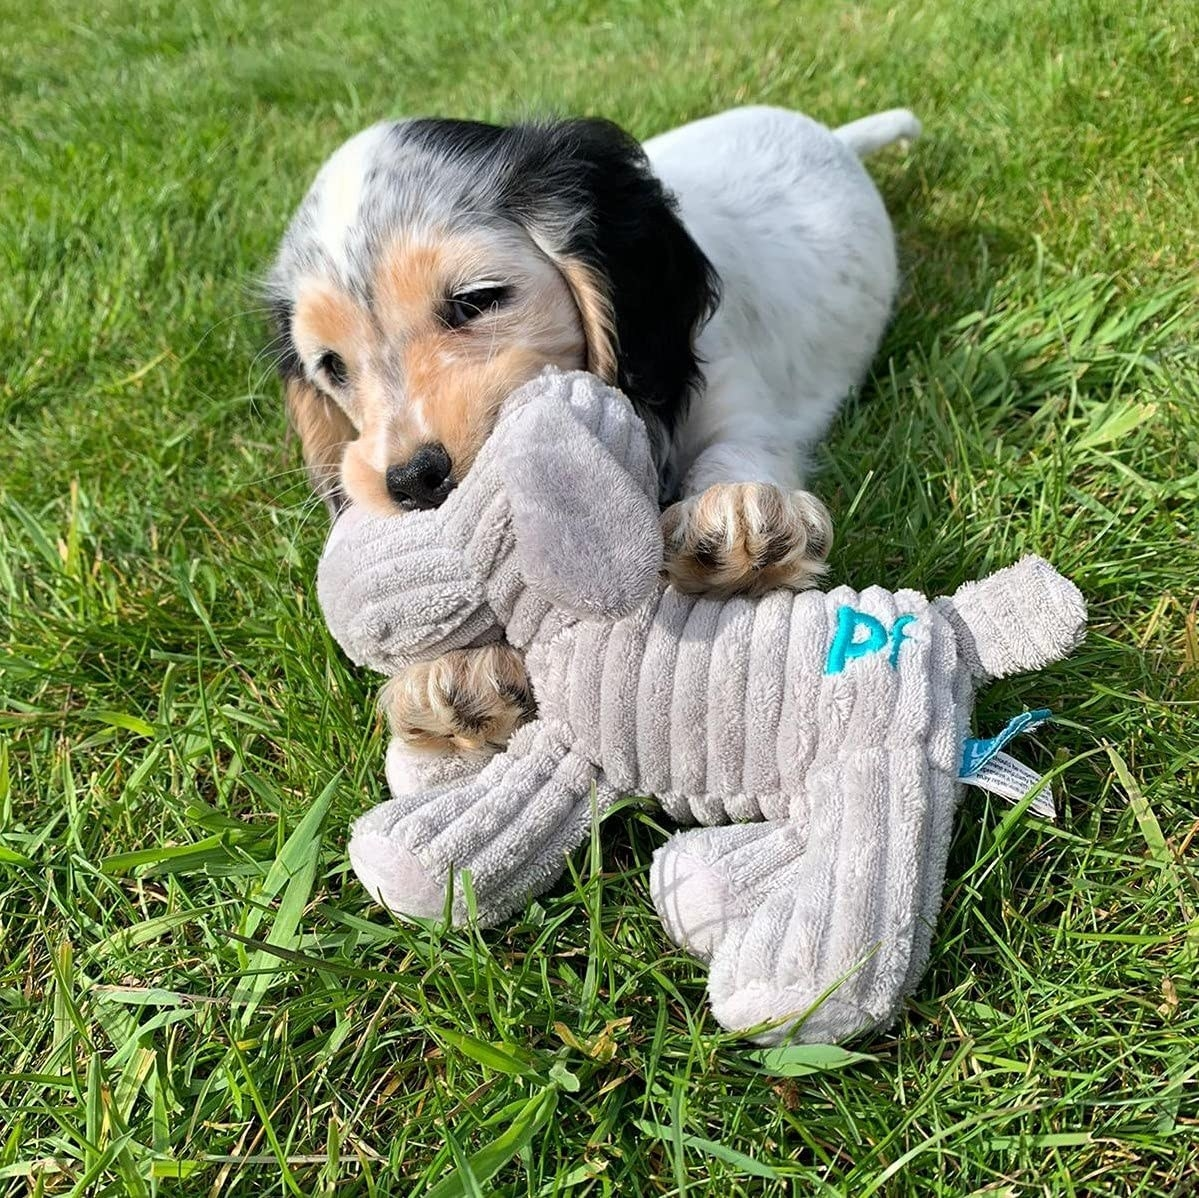 puppy playing with dog toy